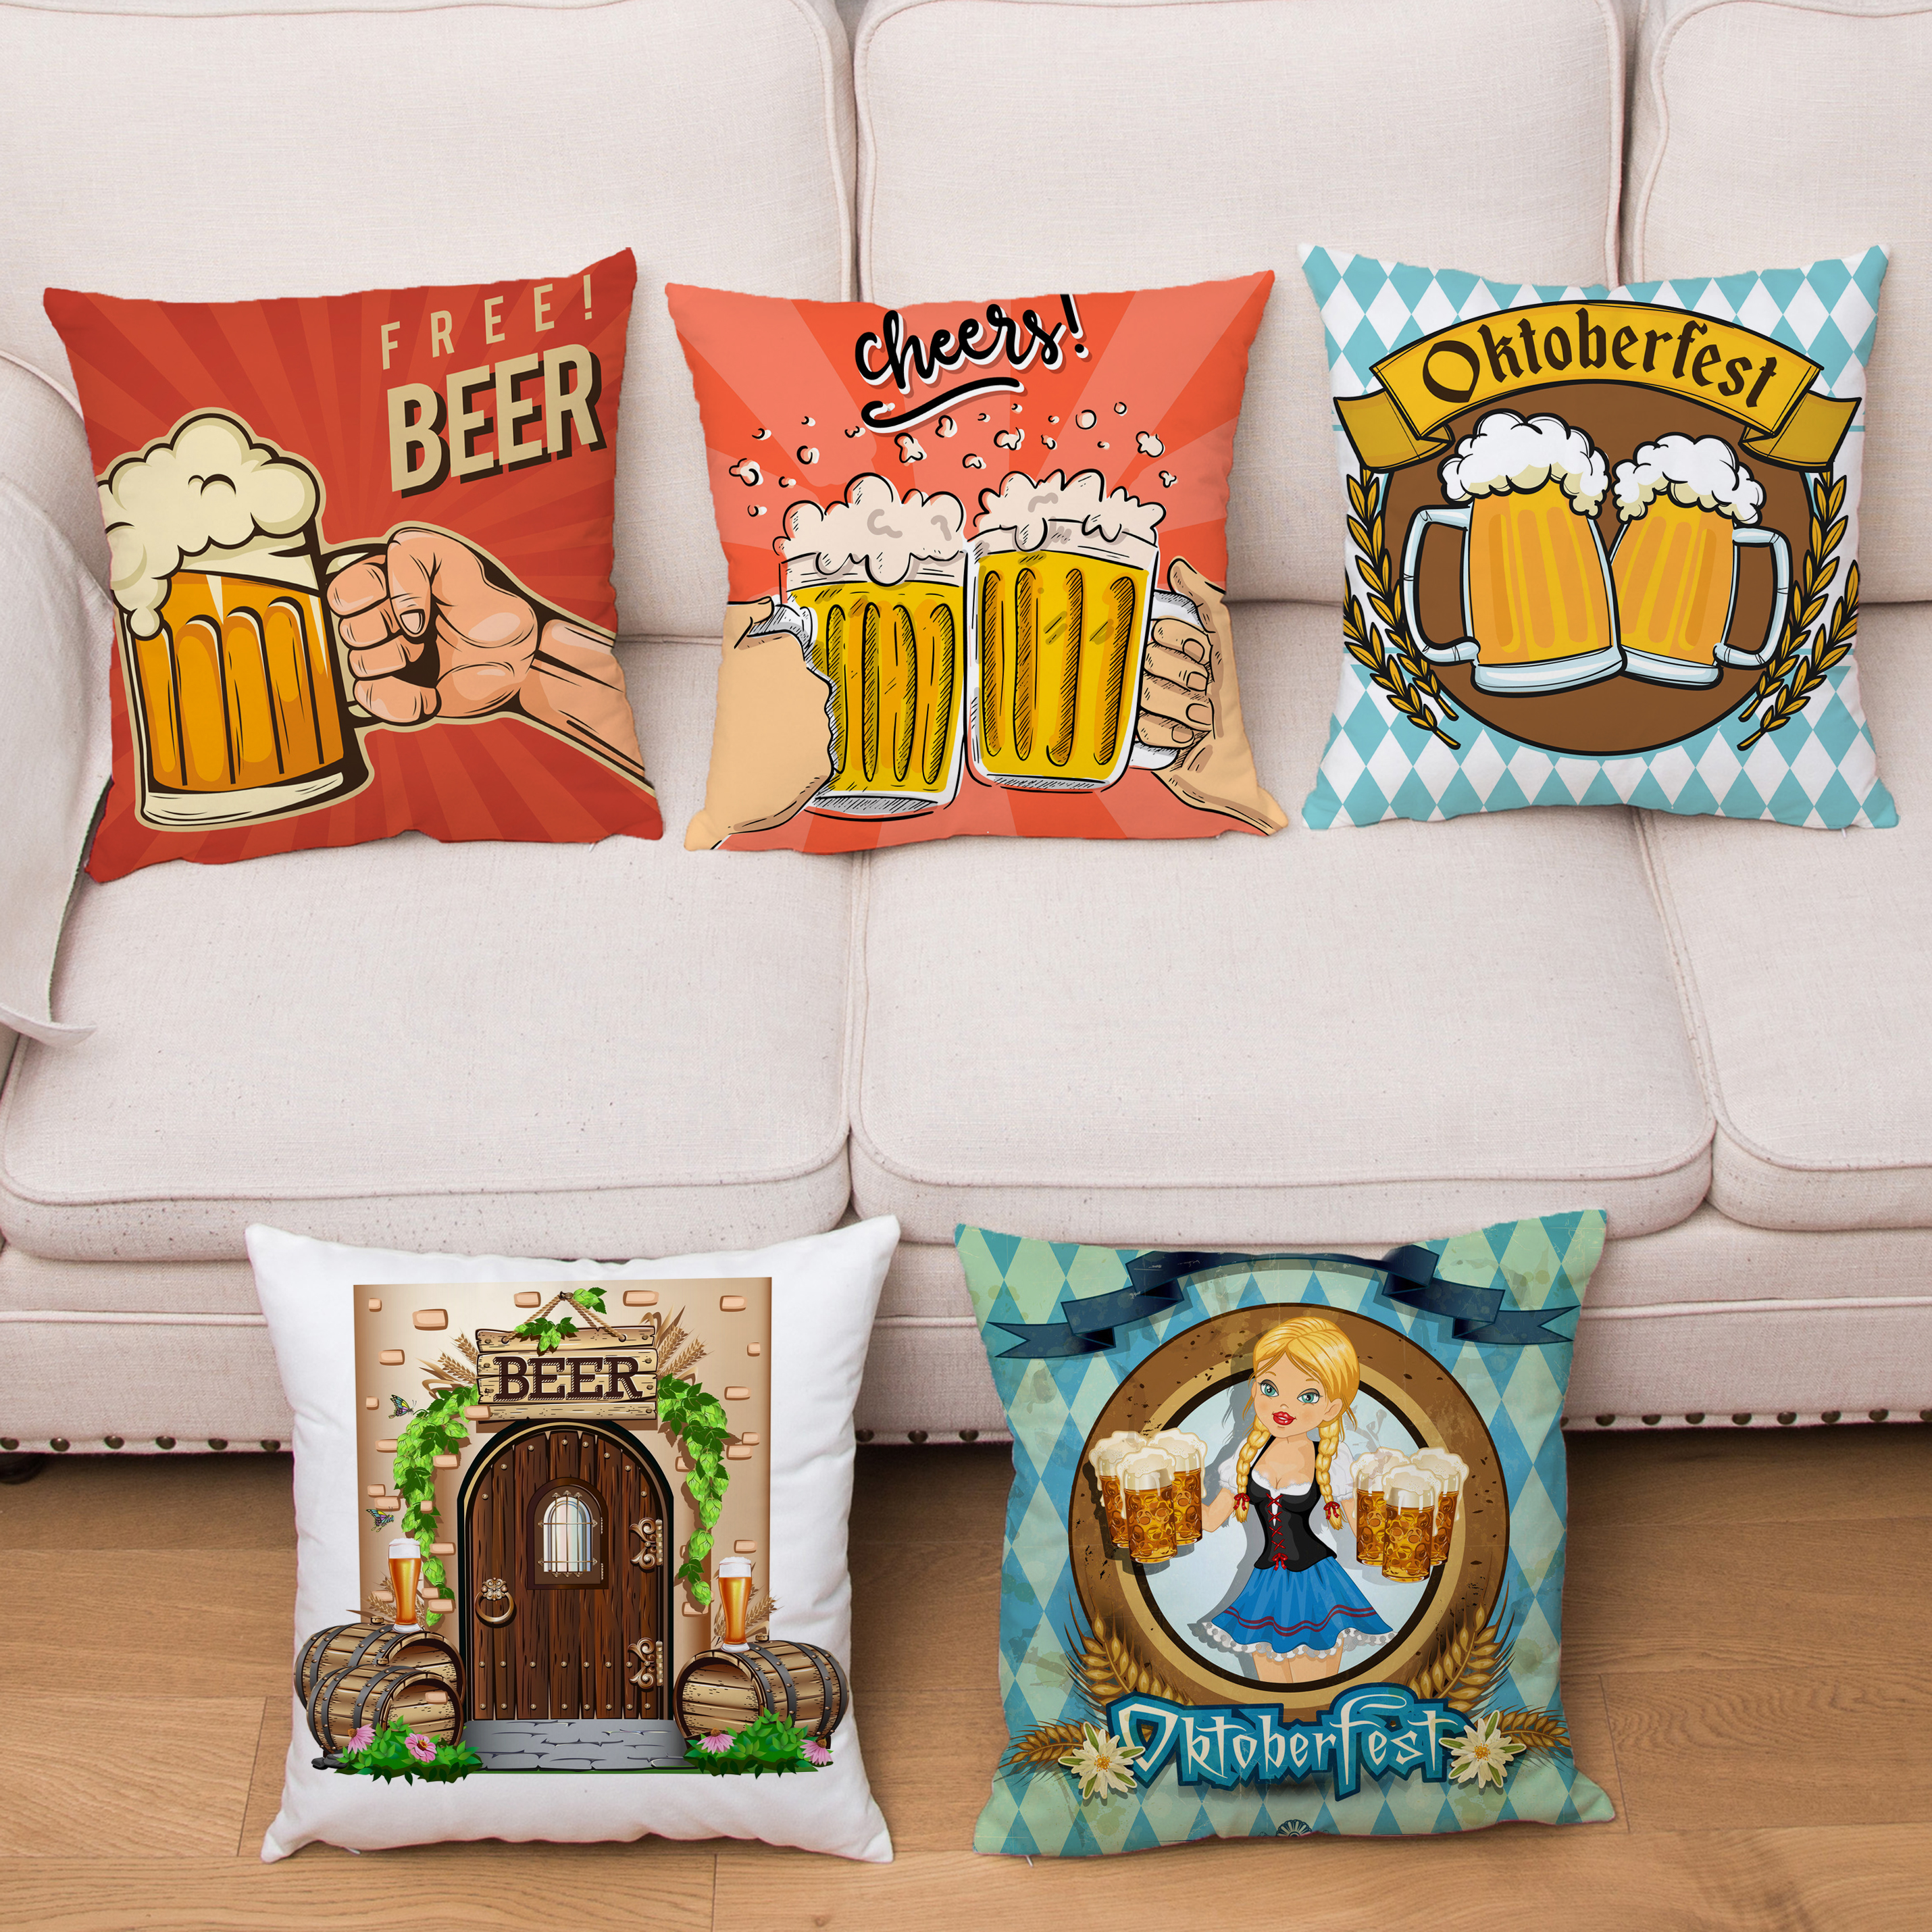 Vintage Cheers Beer Wine Cushion Cover Super Soft Short Plush Pillow Covers Fashion Home Decor Pillows Cases Throw Pillowcase